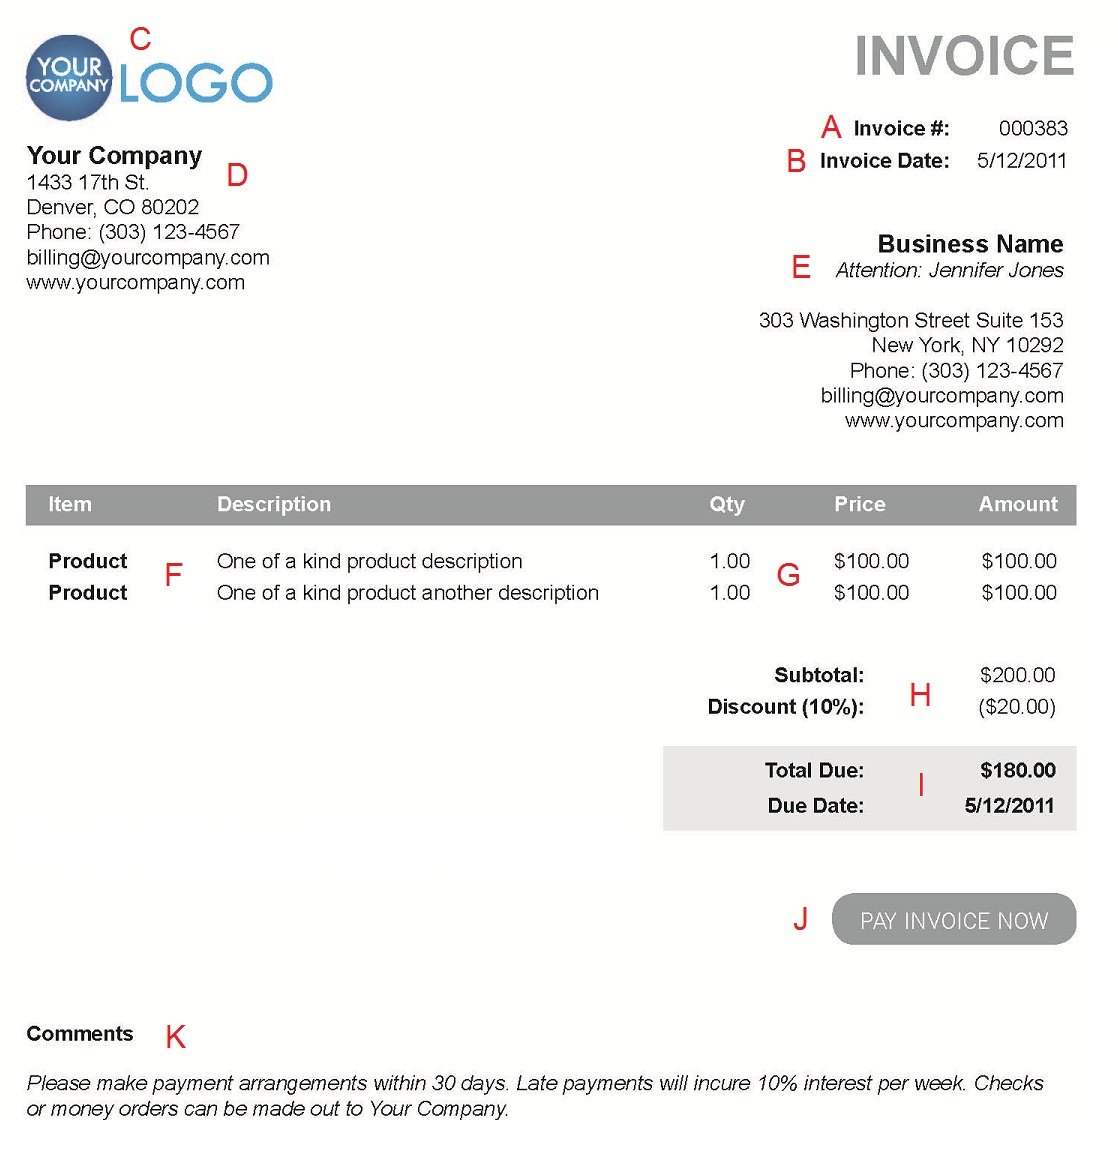 Gpwaus  Unusual The  Different Sections Of An Electronic Payment Invoice With Entrancing A  With Astounding Google Docs Receipt Template Also How To Fake A Receipt In Addition Exchange Without Receipt And Cab Receipts As Well As Scanning Receipts Into Quickbooks Additionally Make My Own Receipt From Paysimplecom With Gpwaus  Entrancing The  Different Sections Of An Electronic Payment Invoice With Astounding A  And Unusual Google Docs Receipt Template Also How To Fake A Receipt In Addition Exchange Without Receipt From Paysimplecom